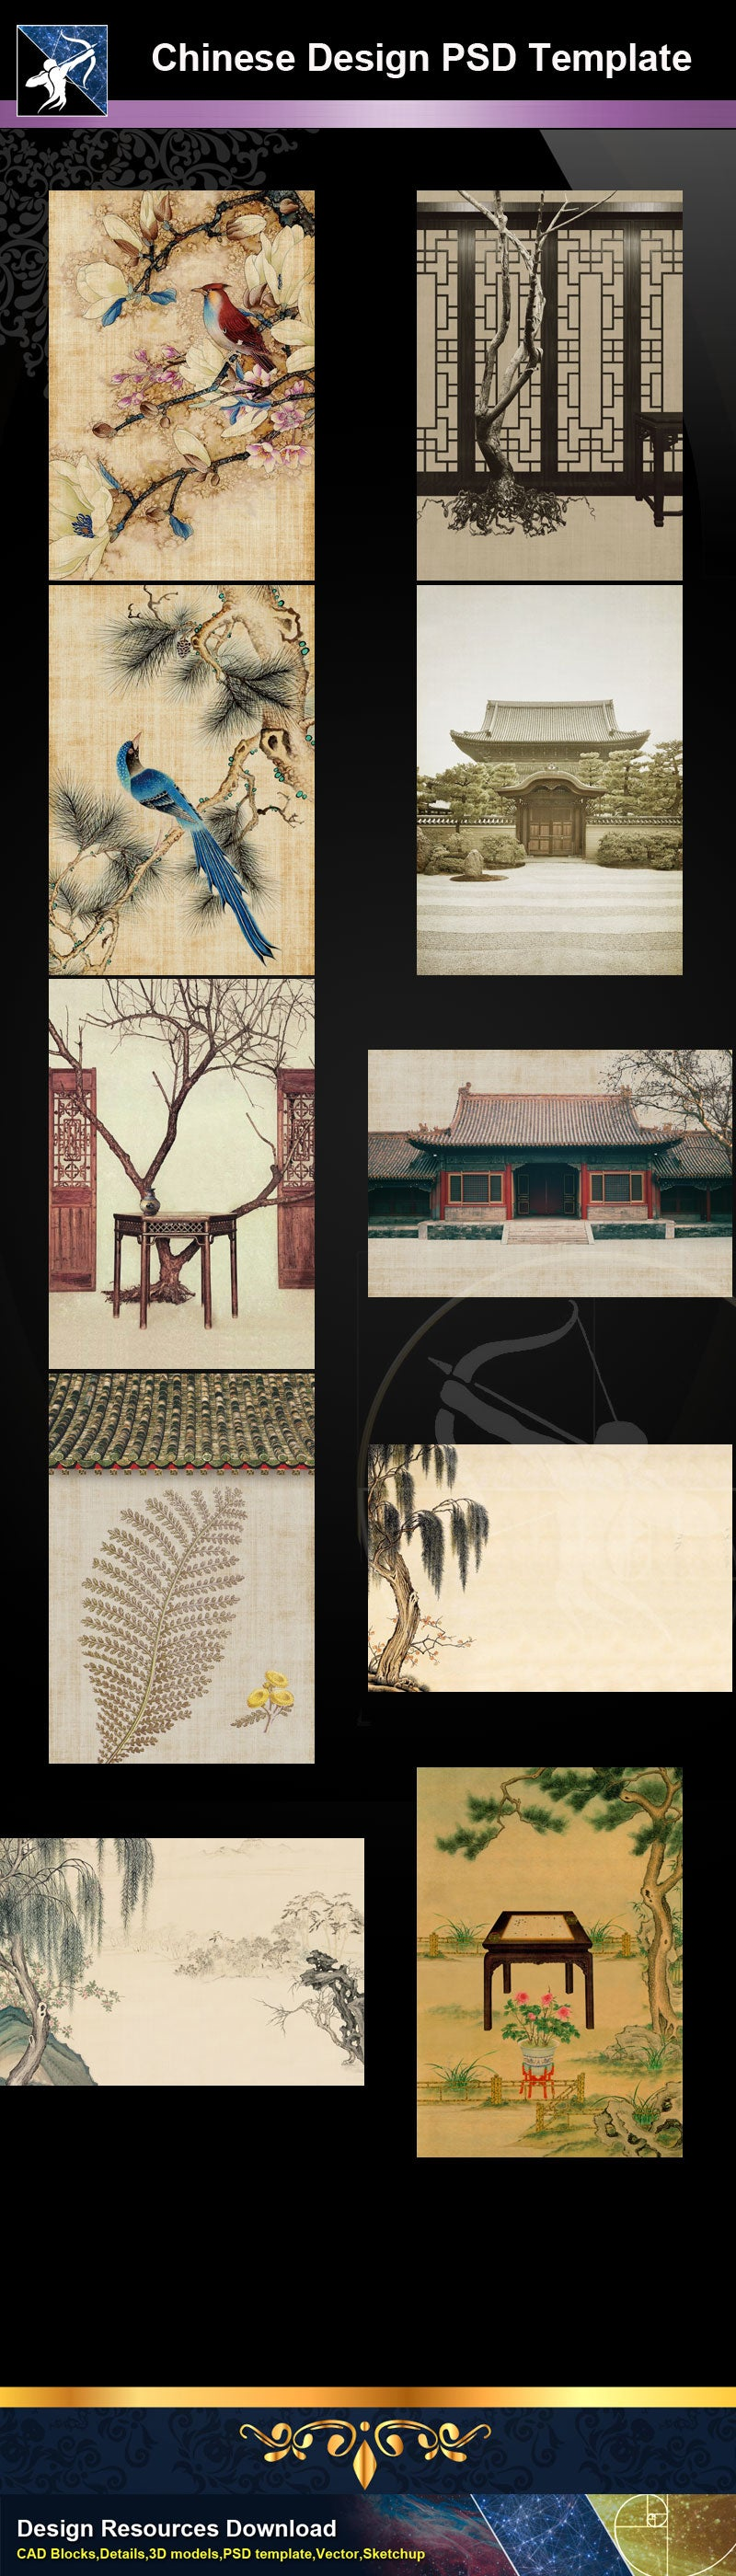 "Photoshop PSD Chinese Design Templates ""PSD"" files can be used in chinese art design."